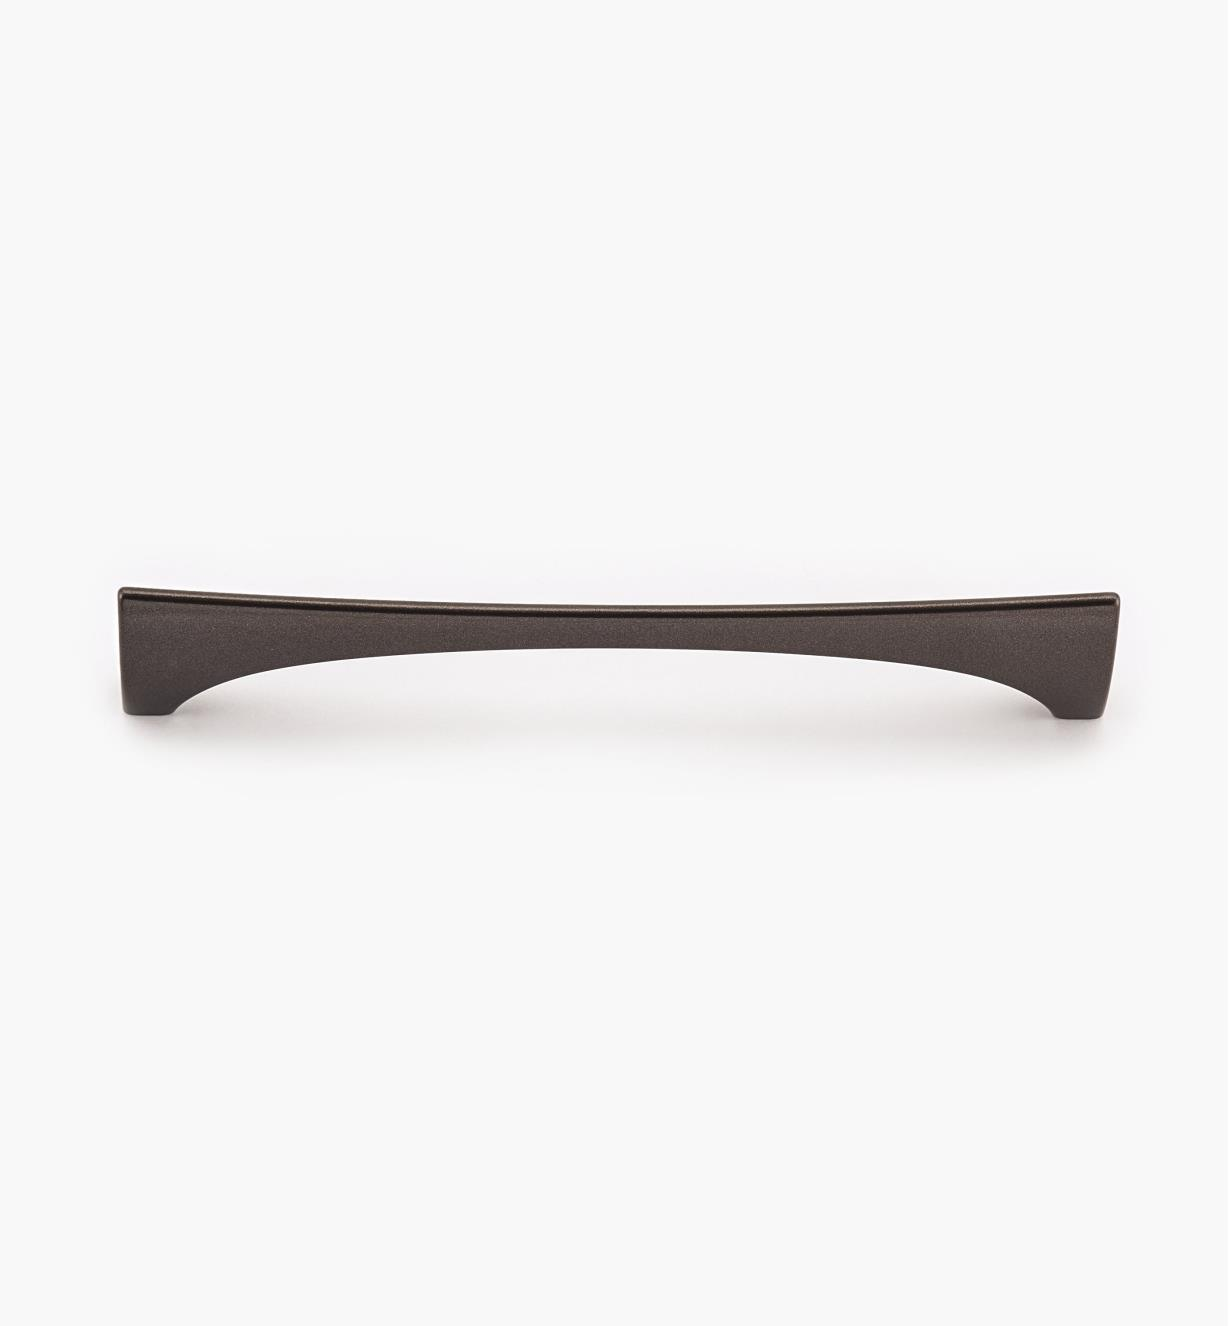 02W3932 - Niteroi 160mm Dark Brown Handle